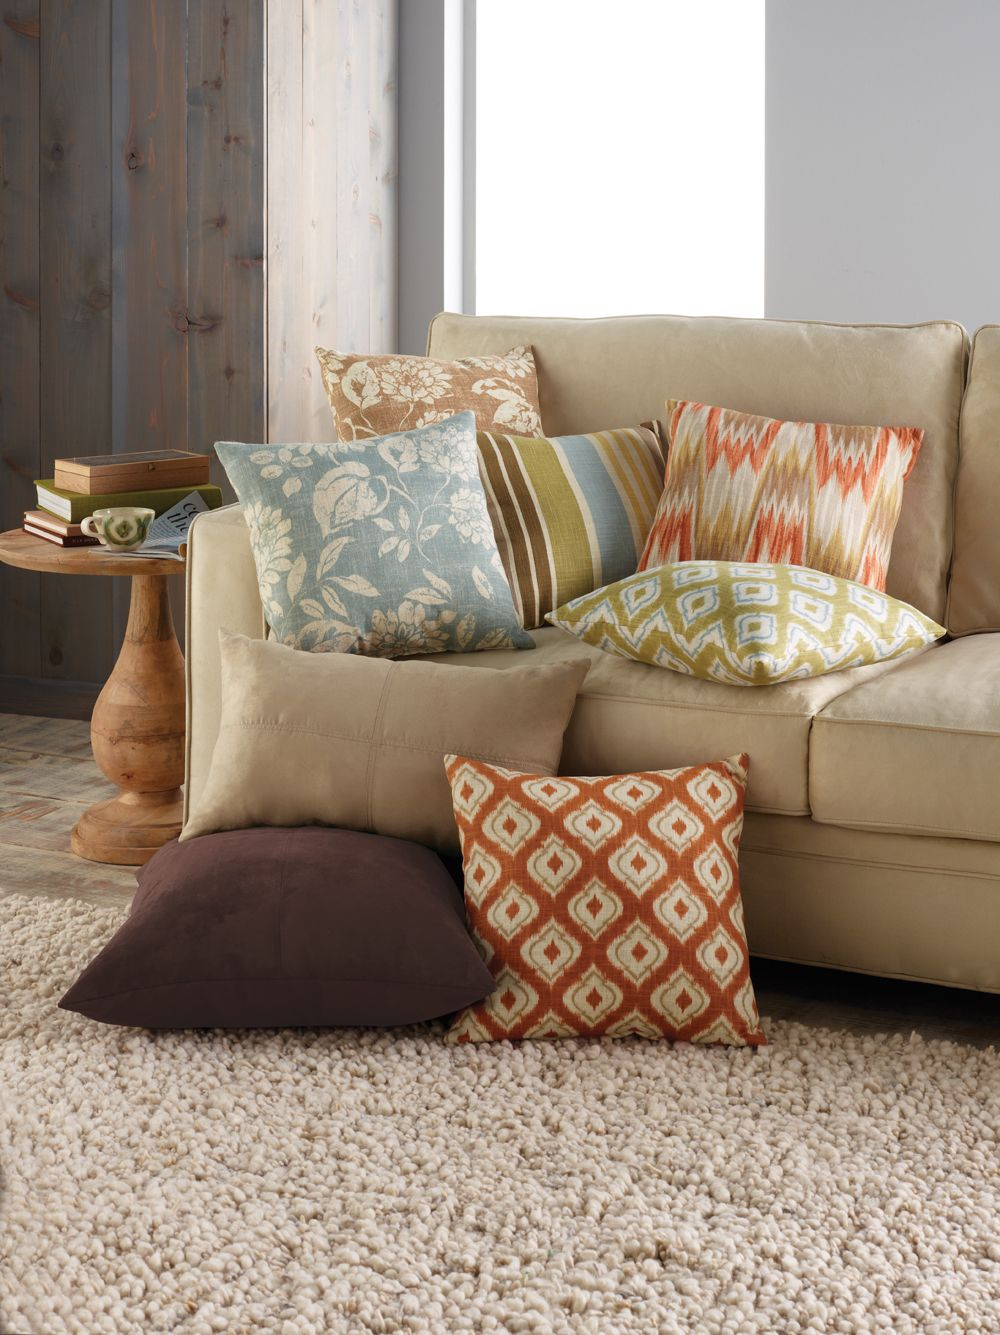 Kohls Decorative Pillows Awesome Throw Pillows Galore#homedecor #kohls  Home Style  Pinterest Design Inspiration